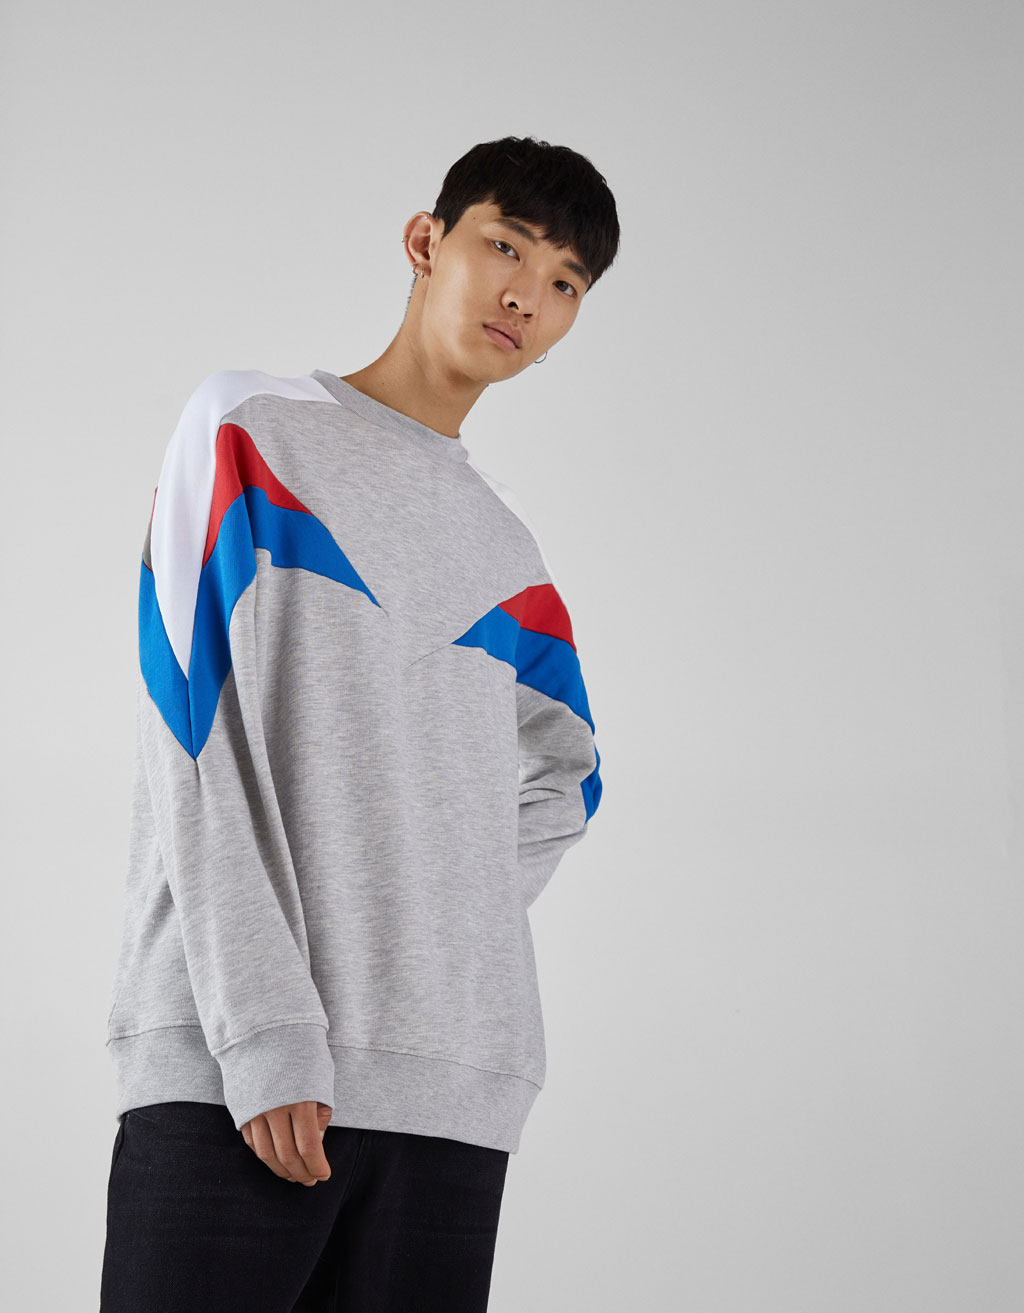 Sweatshirt with geometric details